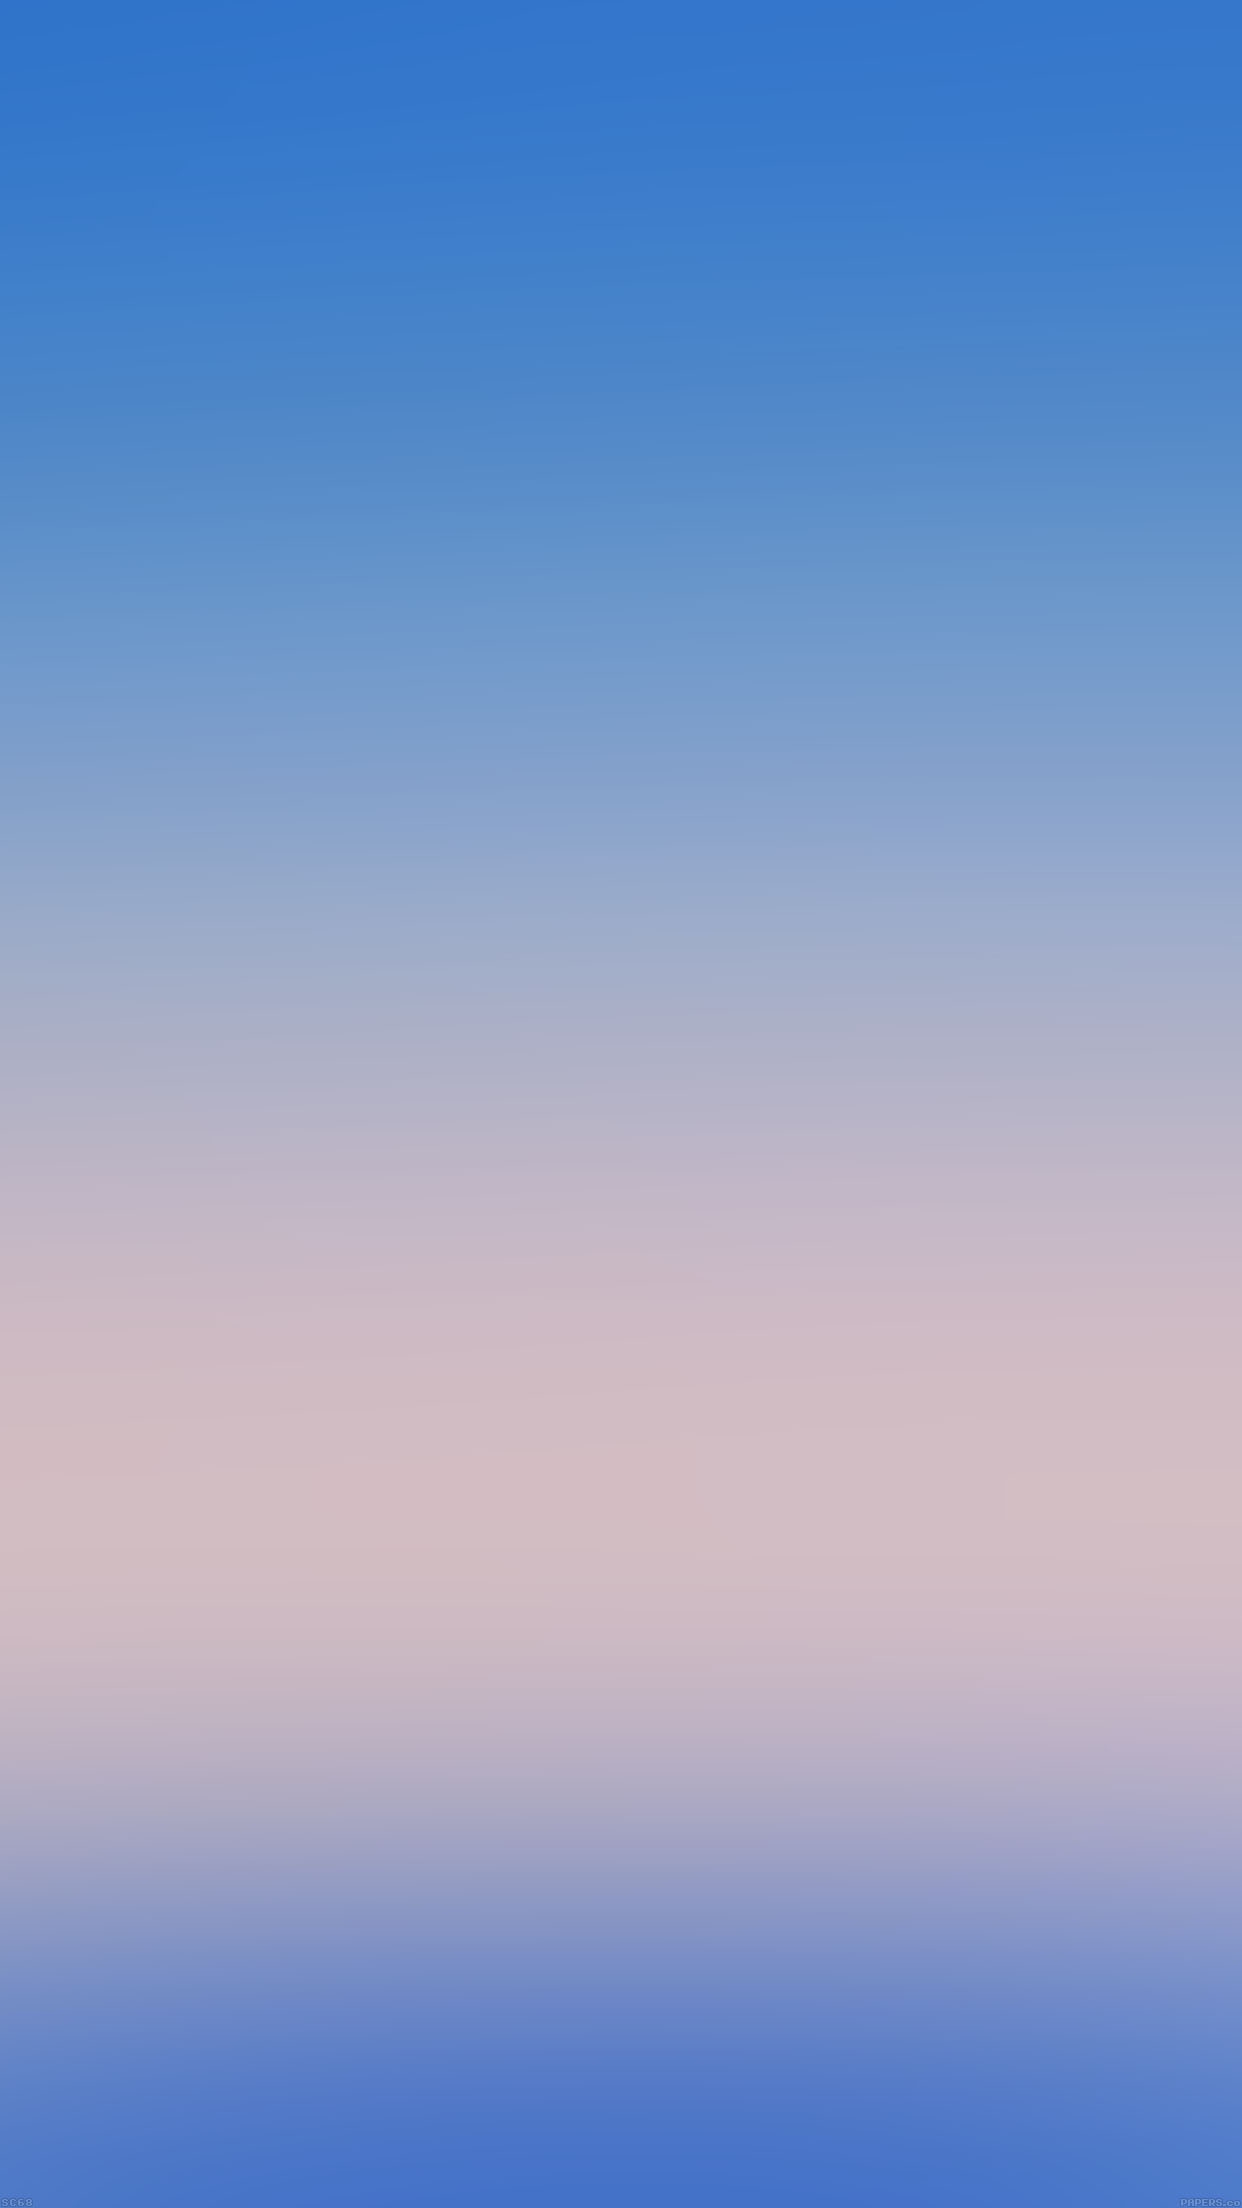 For iphone x iphonexpapers - Ipad air moving wallpaper ...